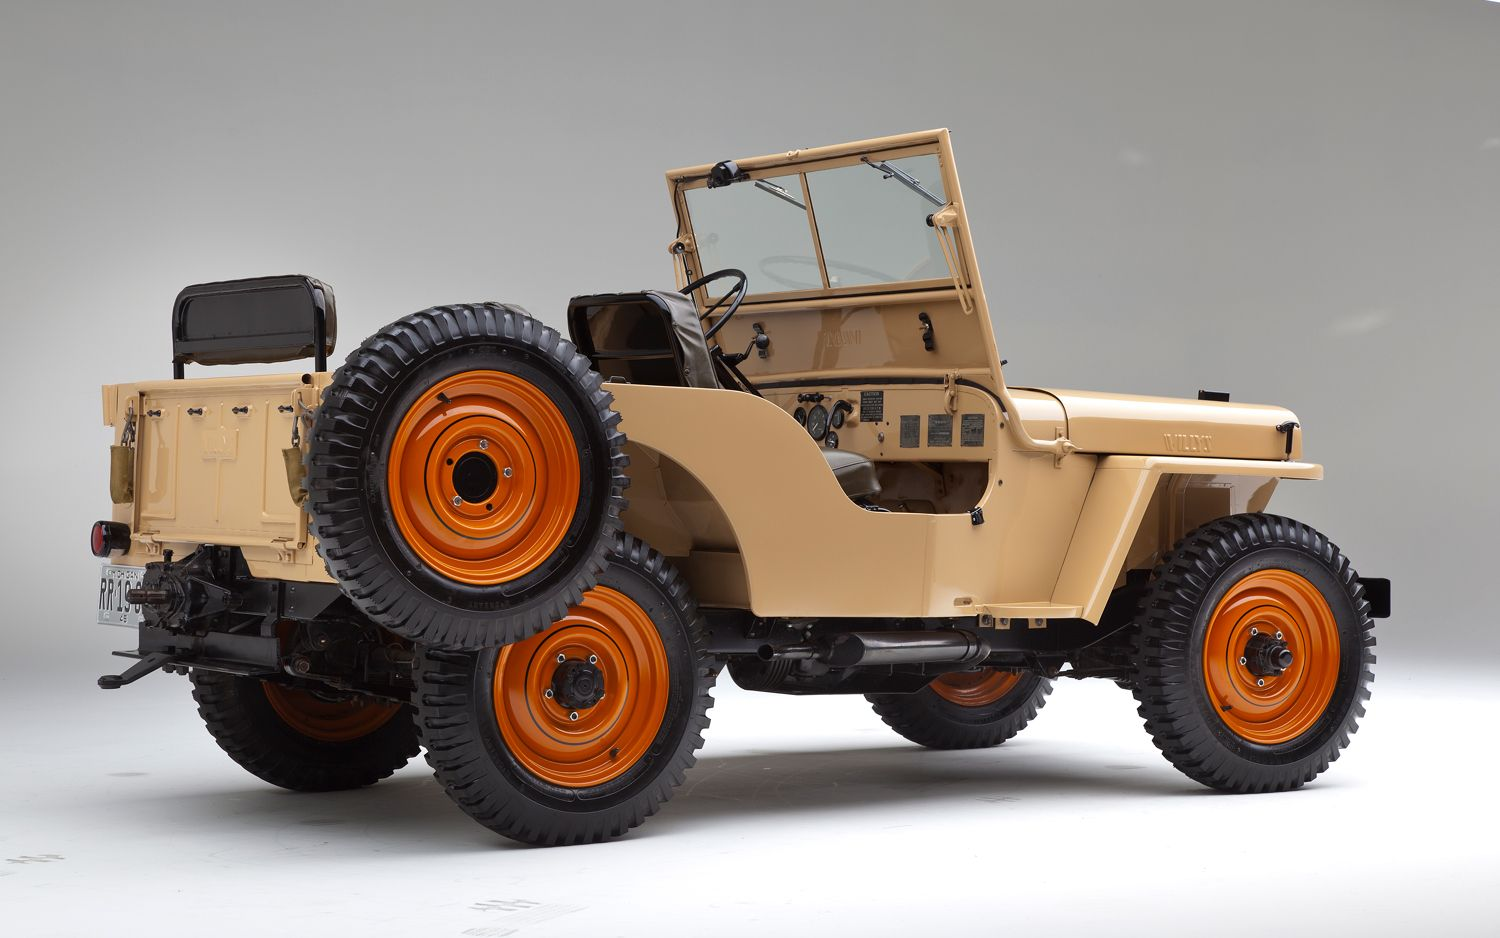 Willys model photo - 4